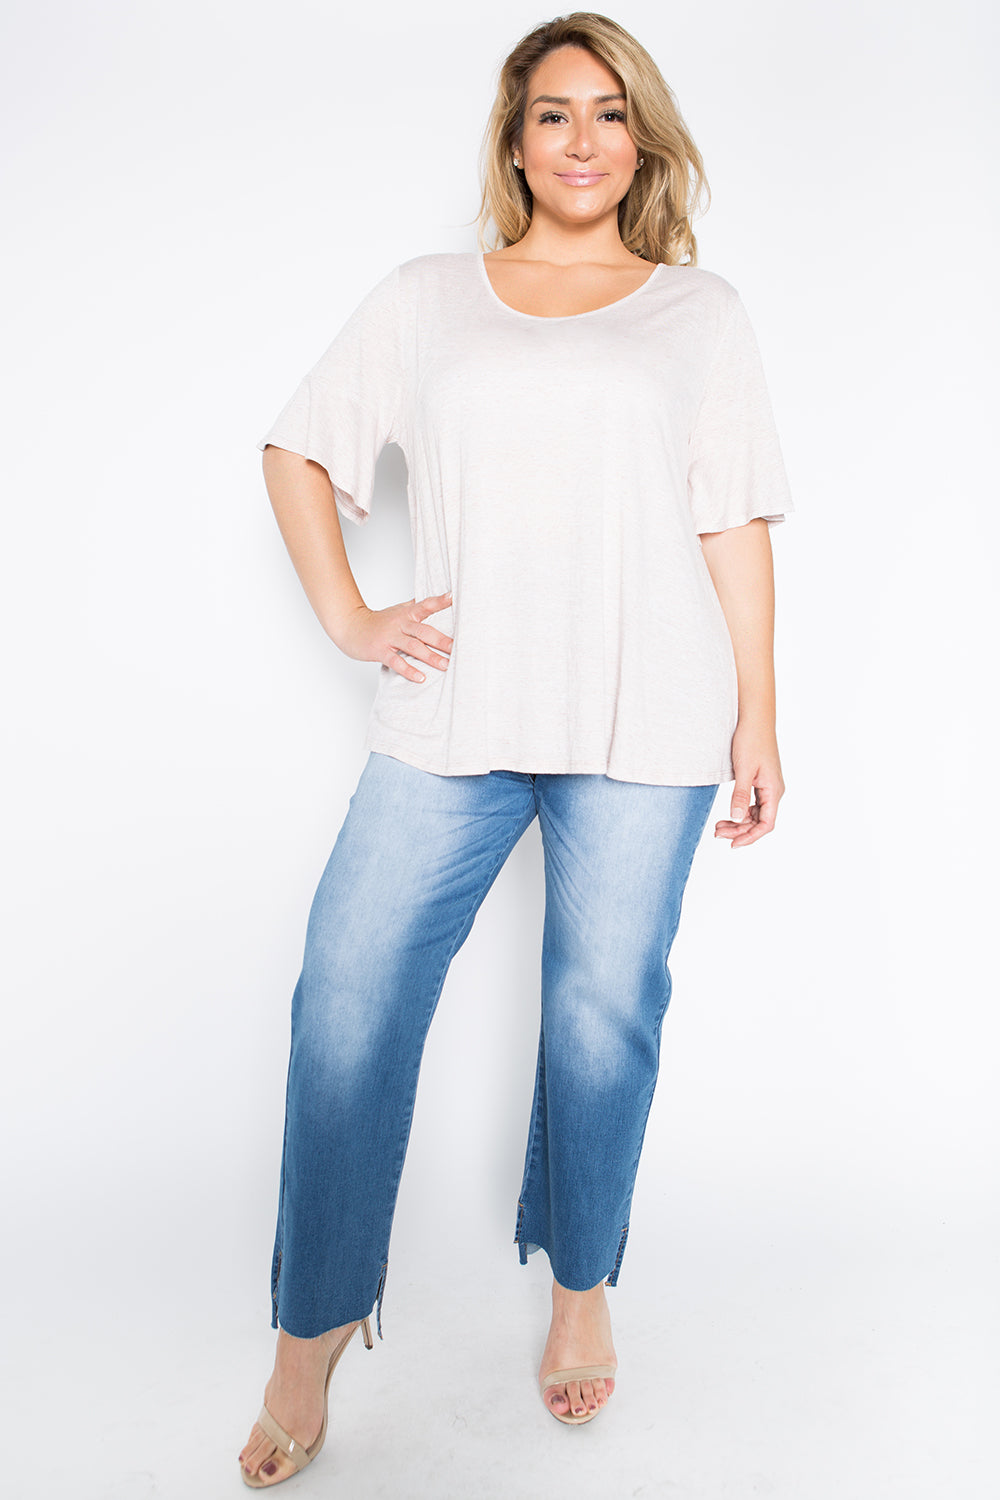 WT2030 bell sleeve Top